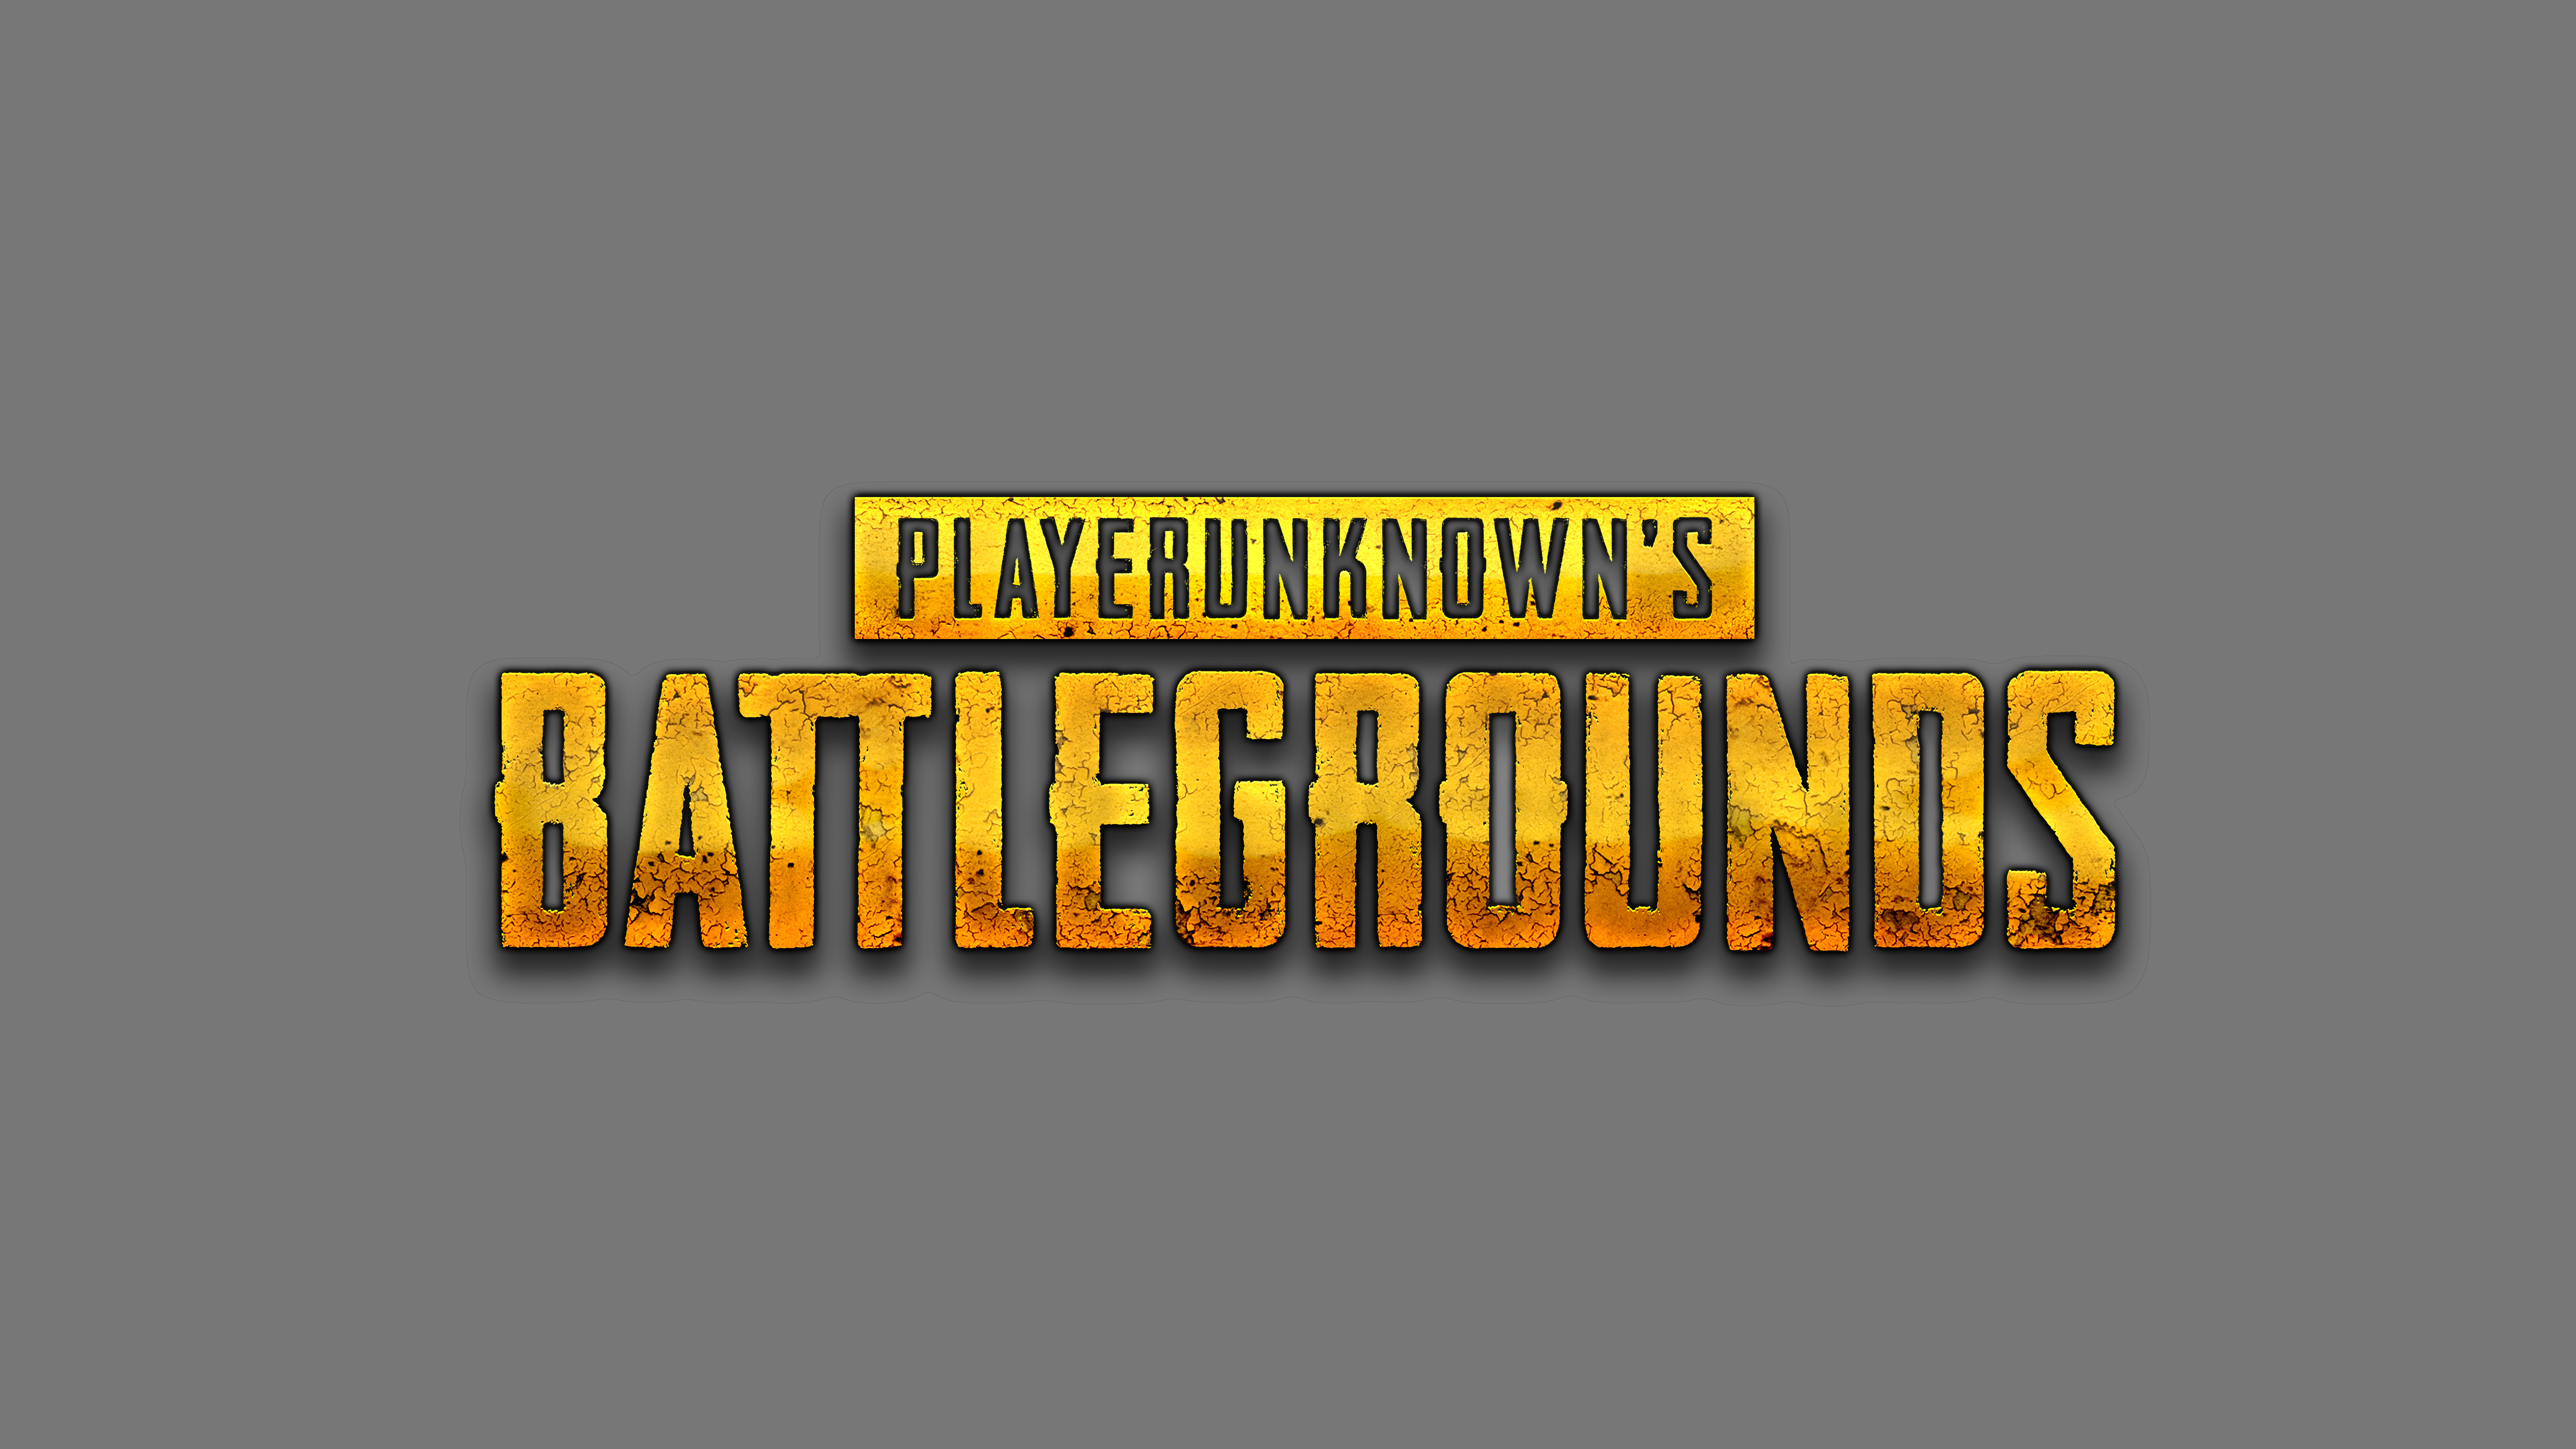 Playerunknown S Battlegrounds Wallpapers: PlayerUnknowns Battlegrounds Logo 5k, HD Games, 4k